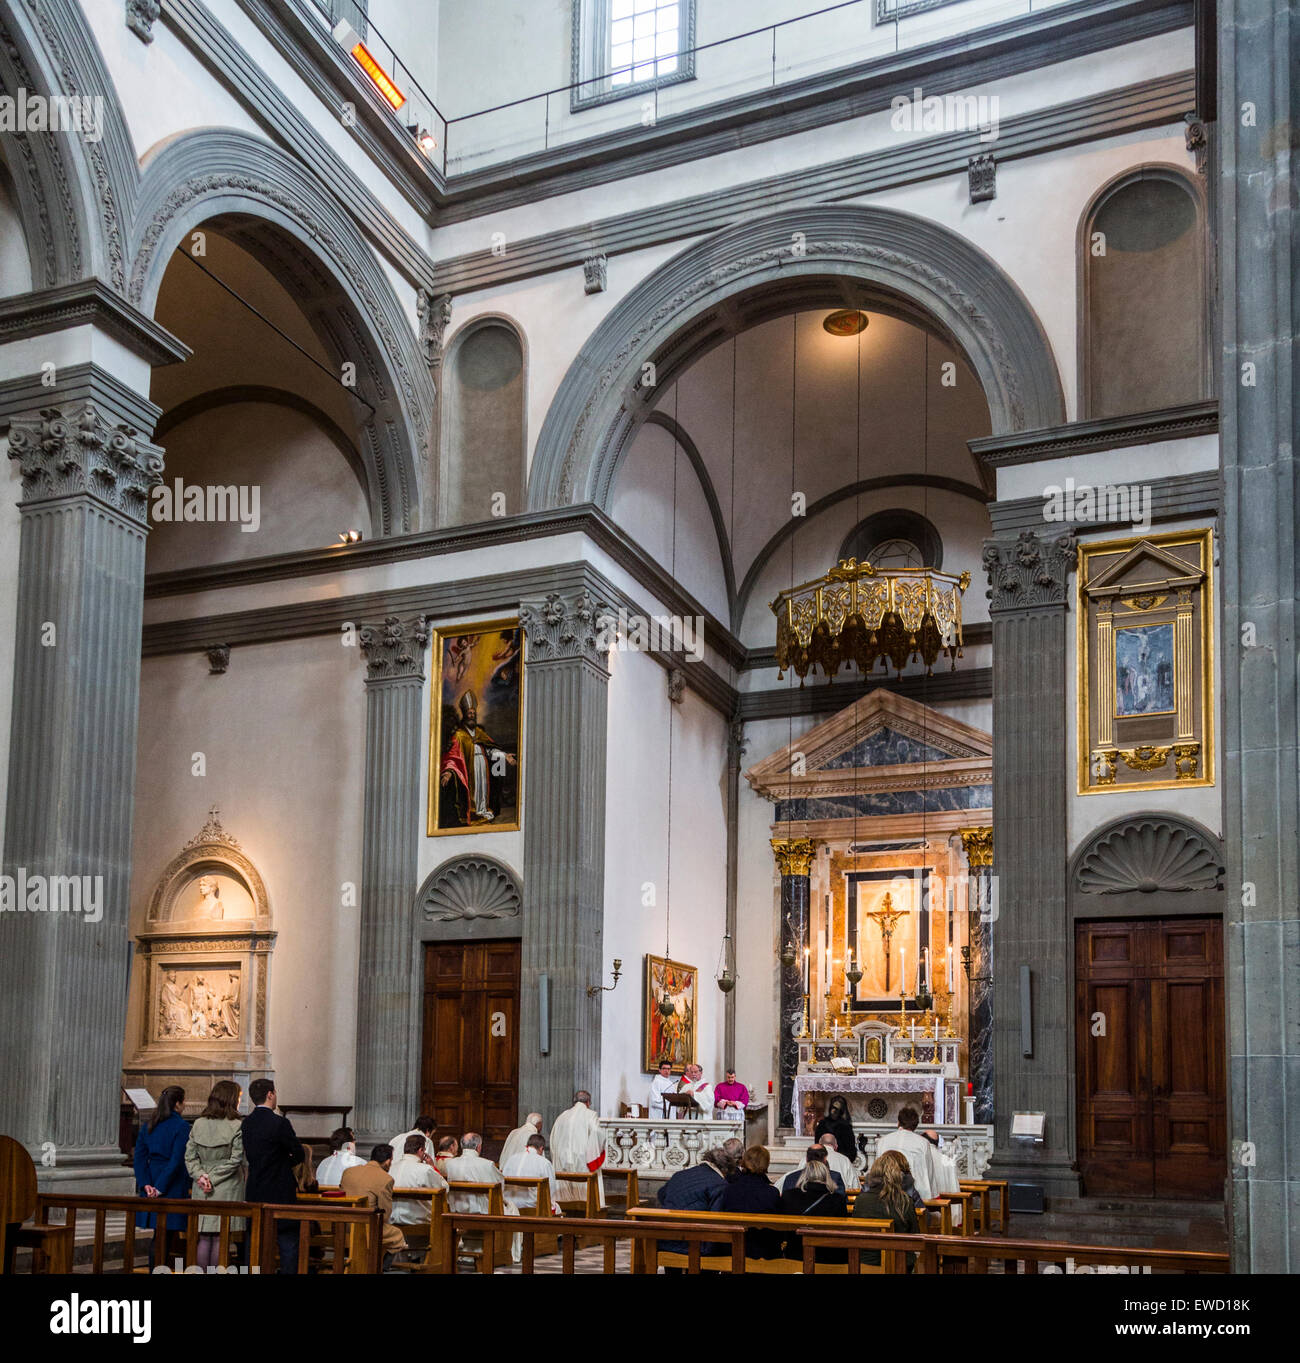 mass in side chapel, Basilica of San Lorenzo, Florence, Italy - Stock Image